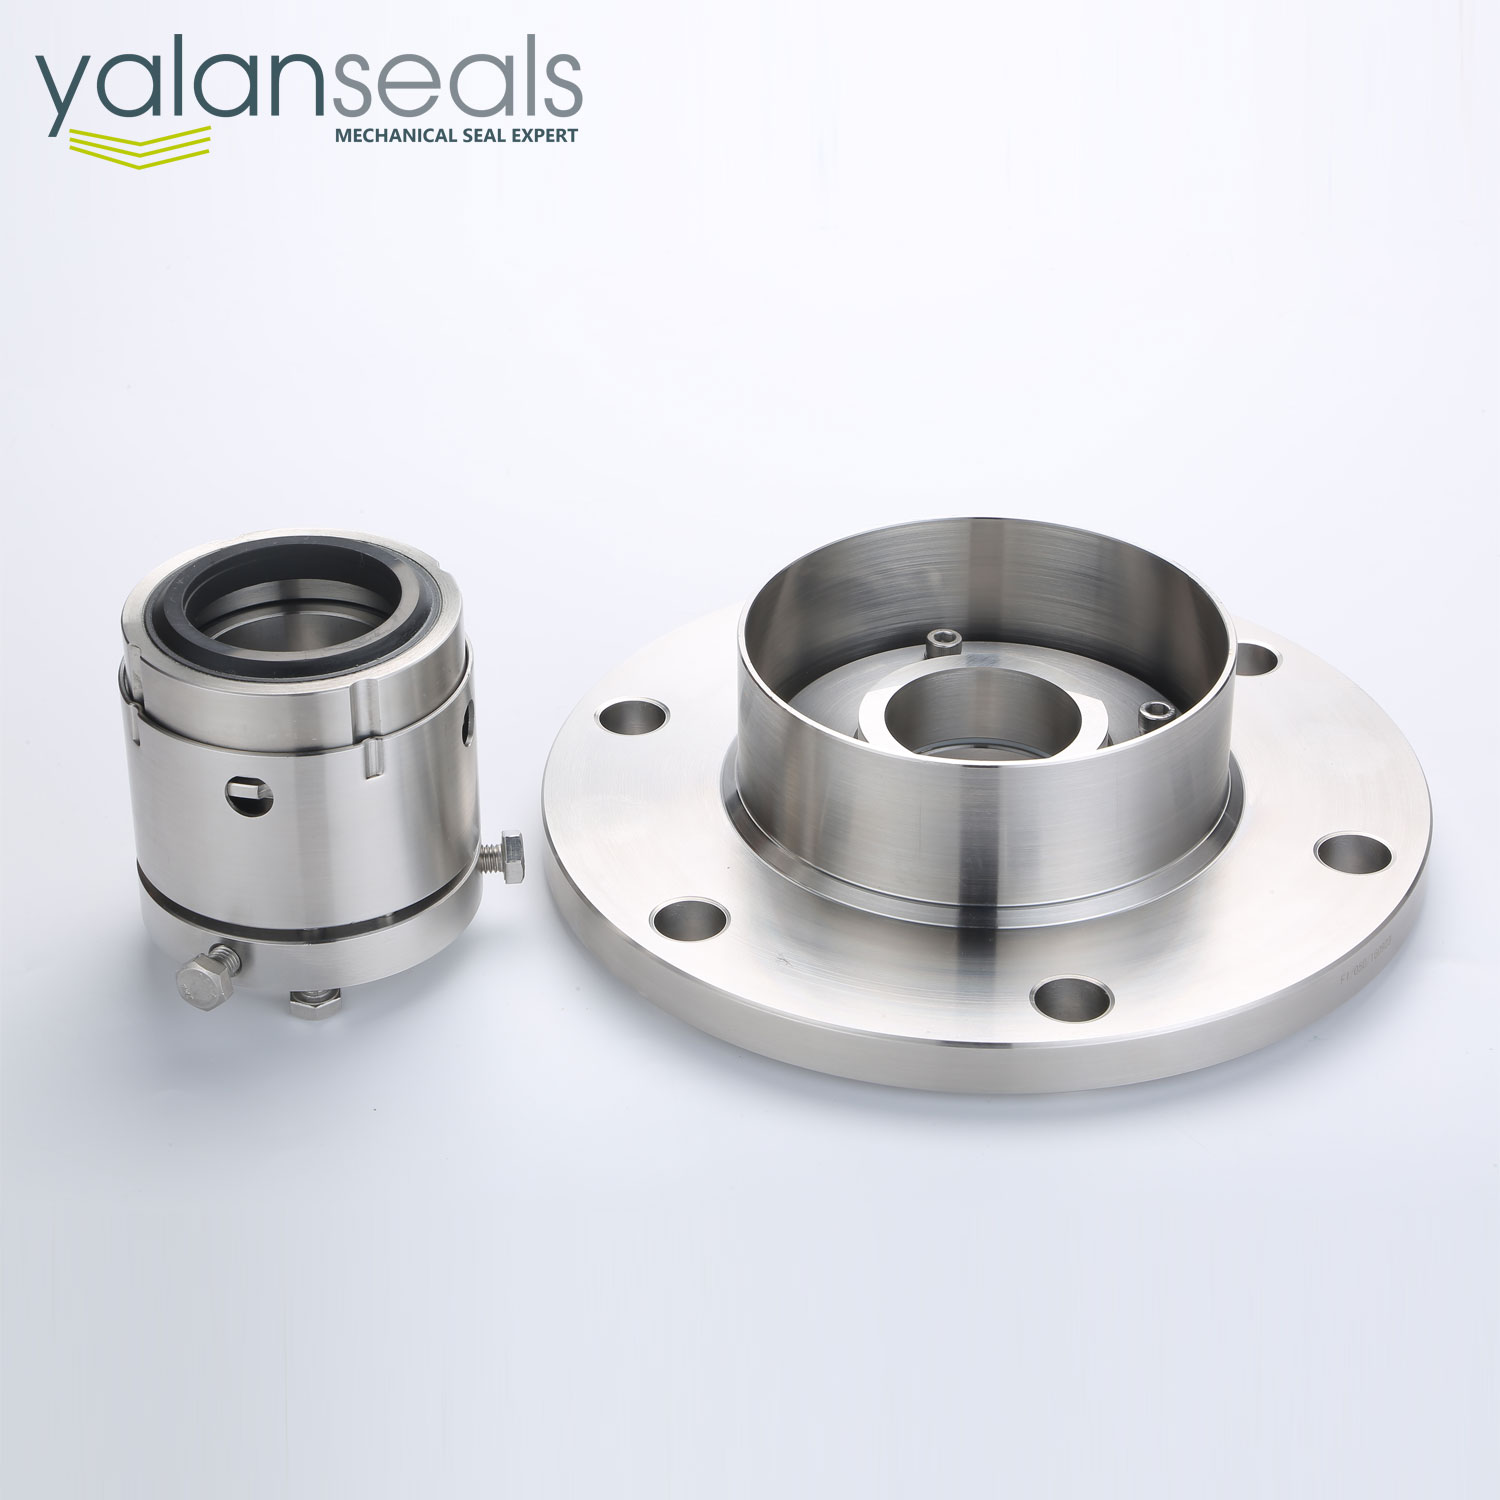 204B Mechanical Seal with Oil Basin